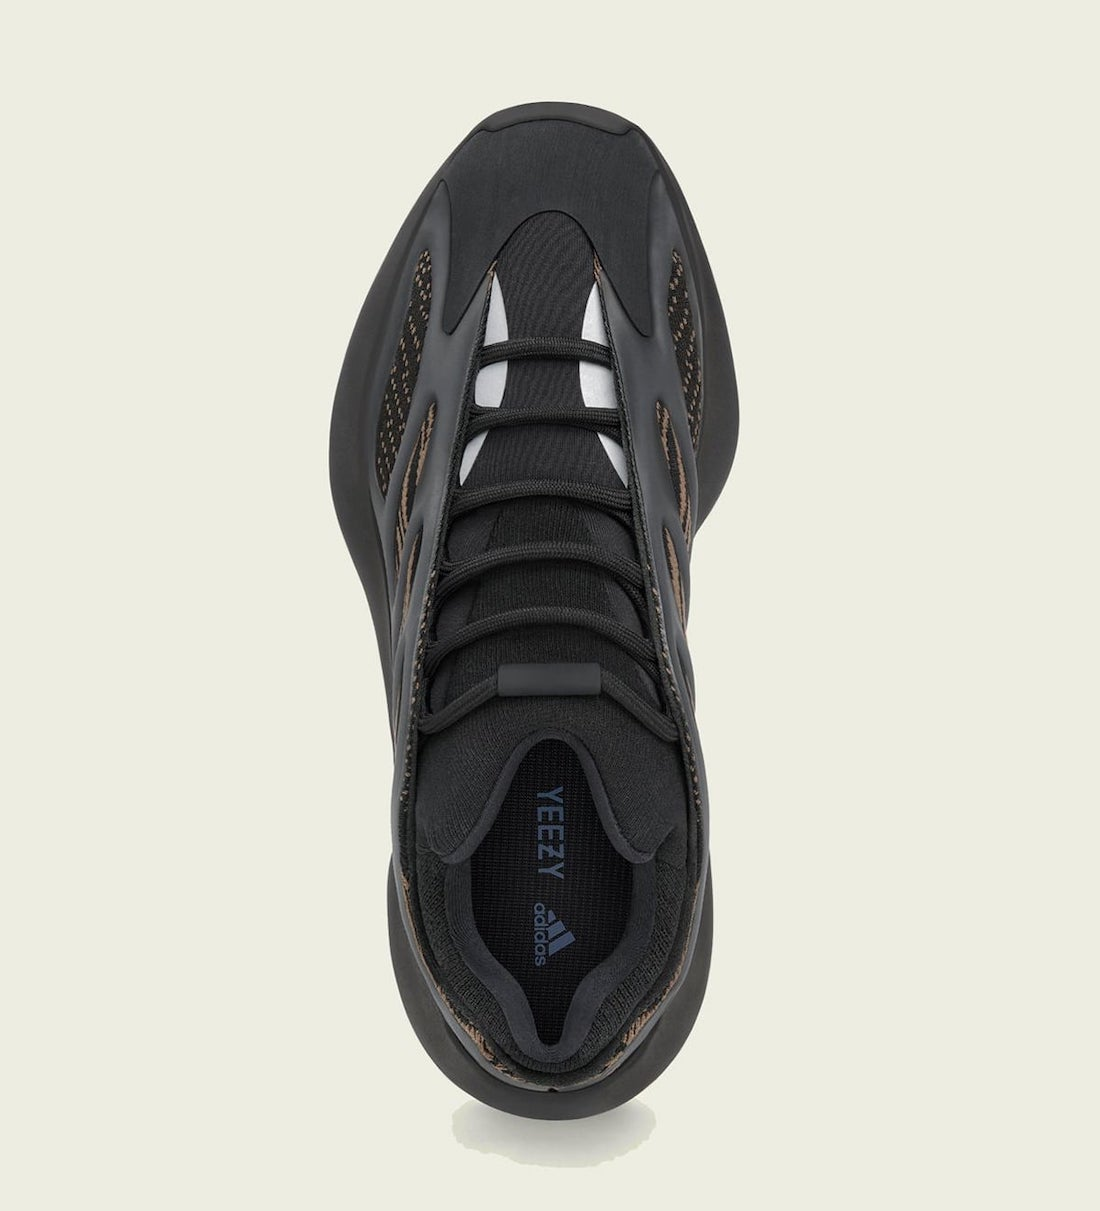 adidas-Yeezy-700-V3-Clay-Brown-GY0189-Release-Date-3